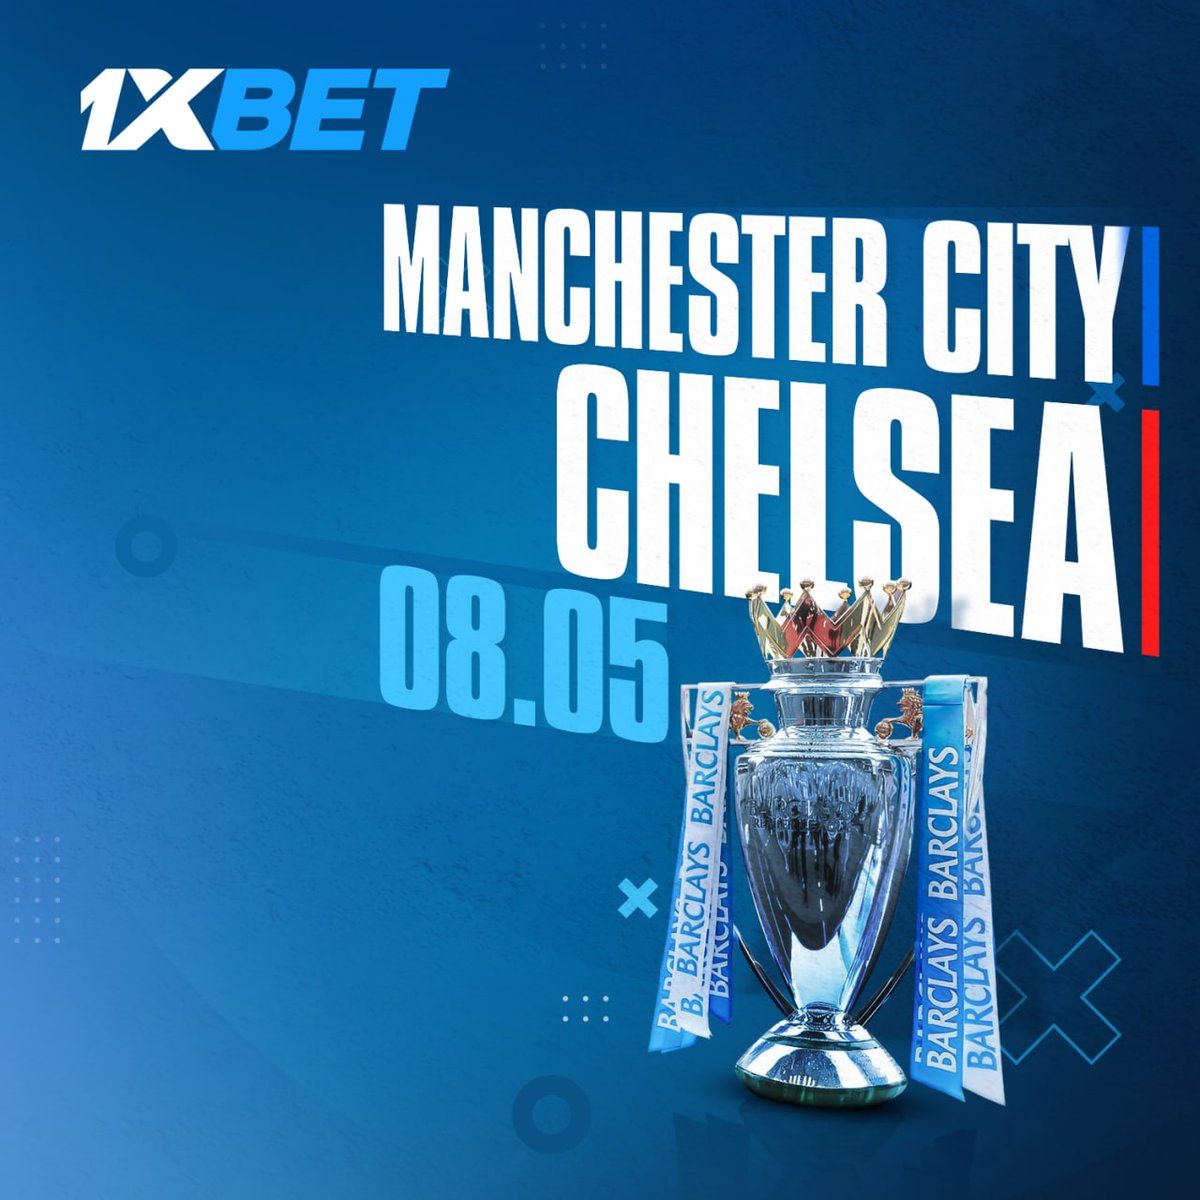 #PL #MCICHE  #ManCity VS #Chelsea  Place your bets with #1xBet 👉https://t.co/rrYMCxnbSh  Get up to 130€ with Promo Code 👉2020  #football #sports #Barcelona #FCBATM #Soccer #BTC #Messi #ManCity #SerieA #freebet #MatchDay #futebol #PremierLeague #LaLiga #Giveaway #UCL #betwinner https://t.co/Cgnd5Ah2S6